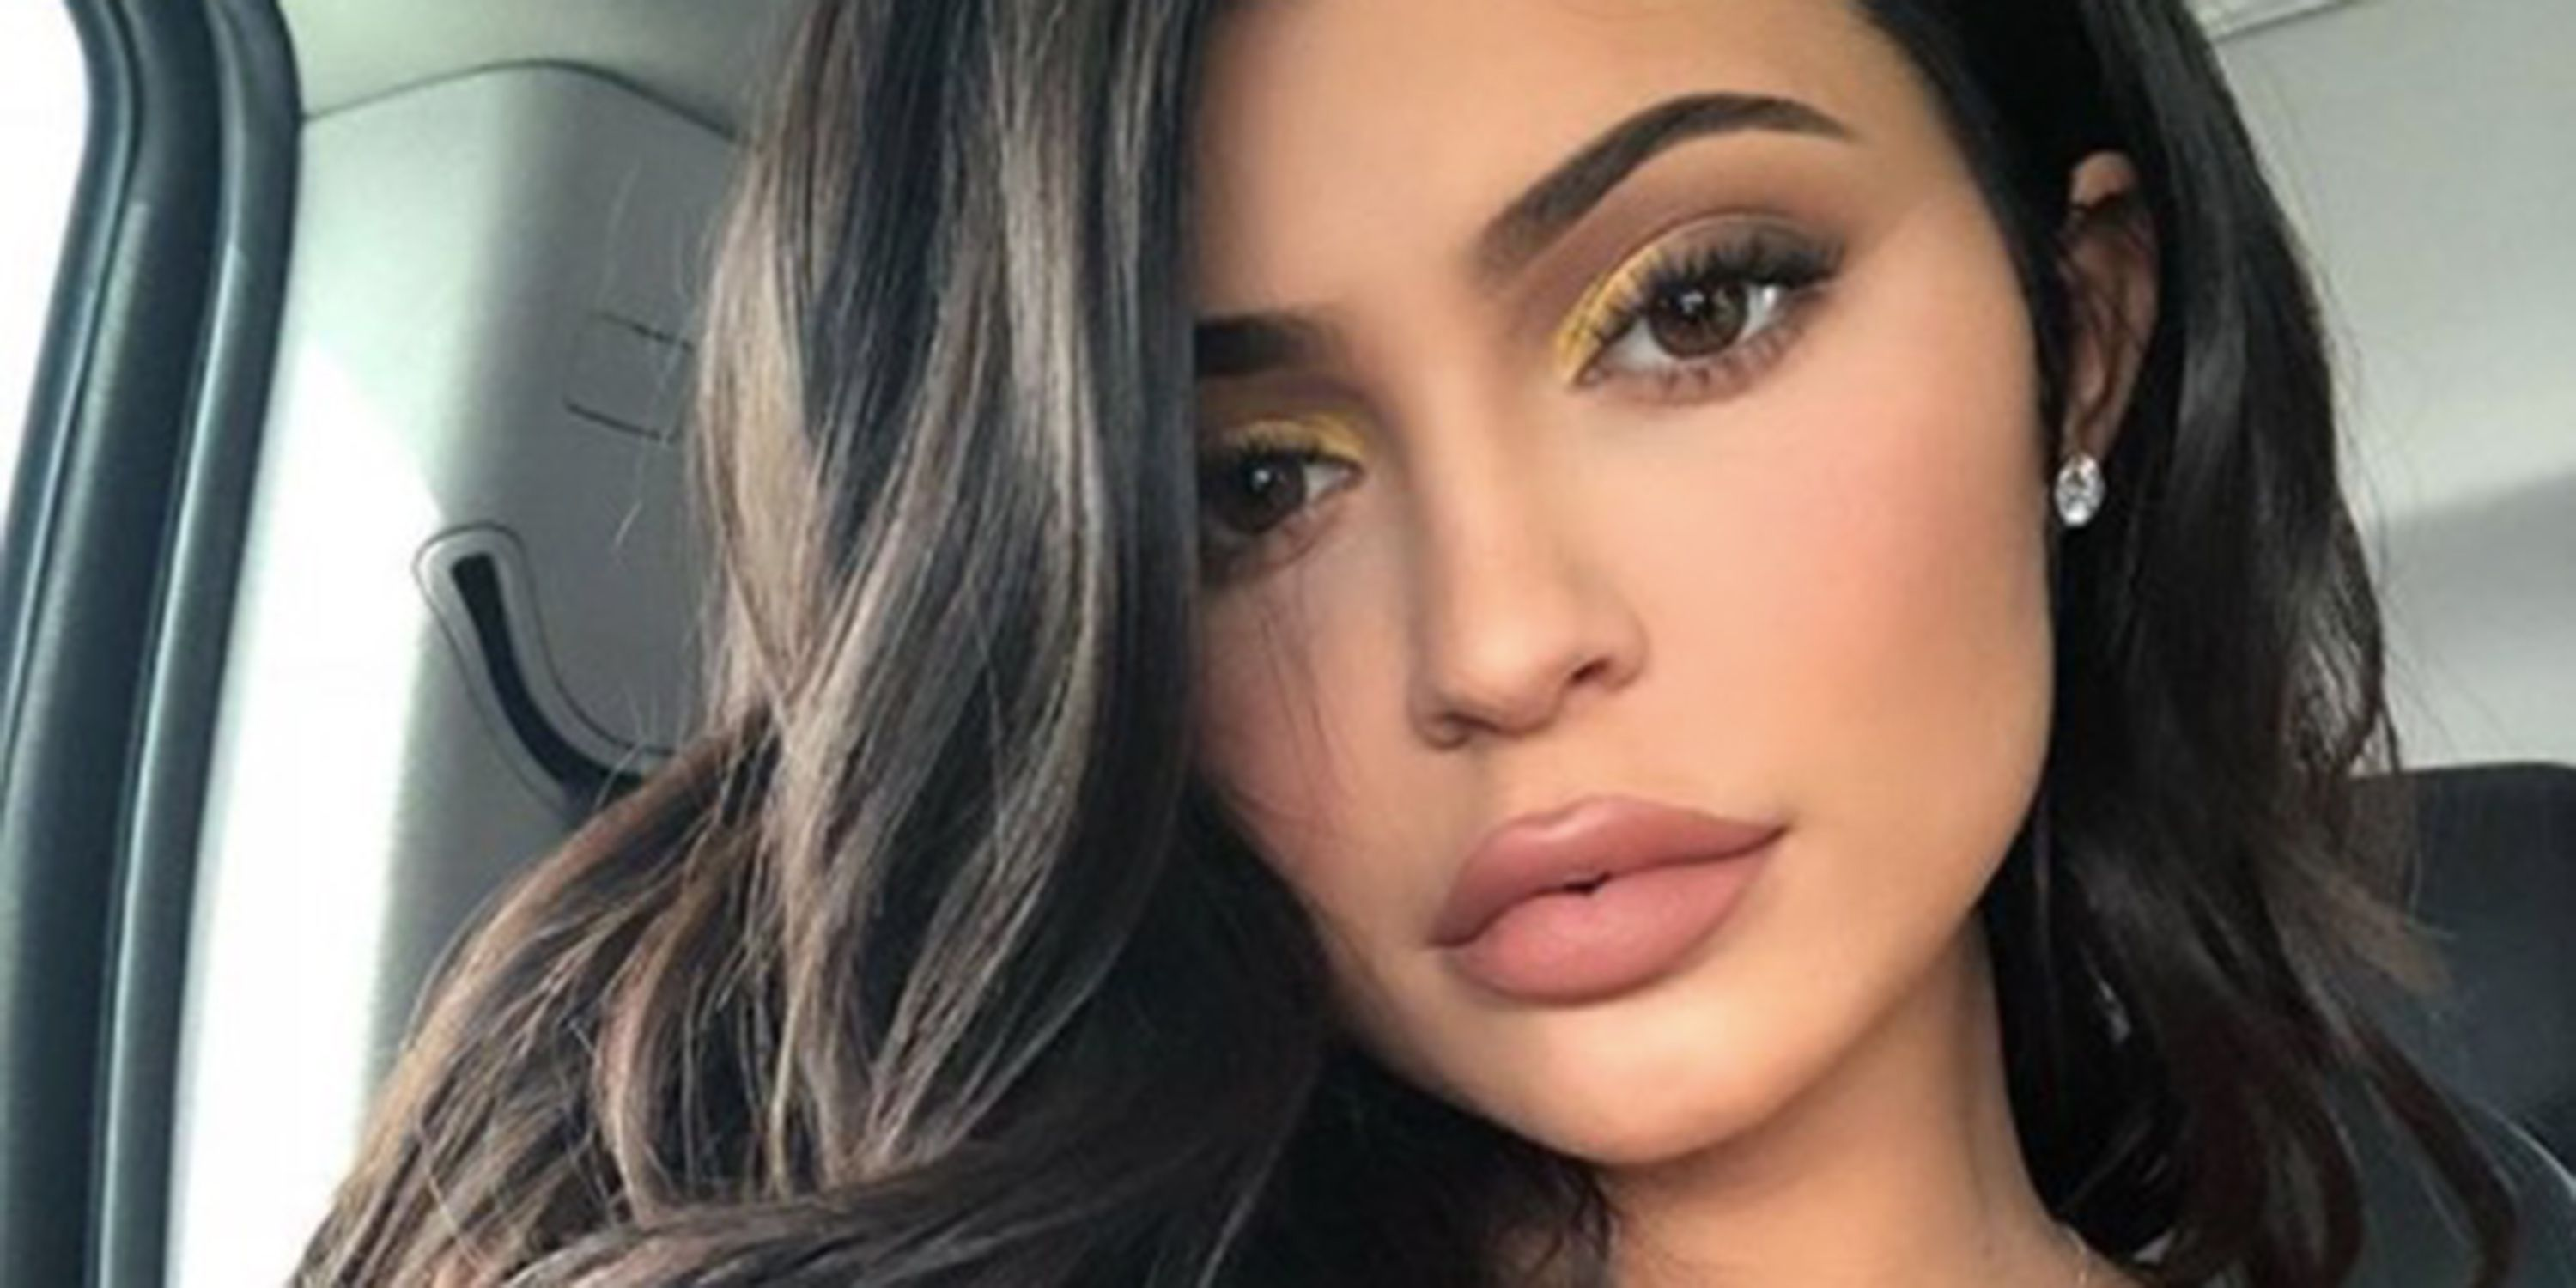 Kylie Jenner, The World Youngest Billionaire At 21